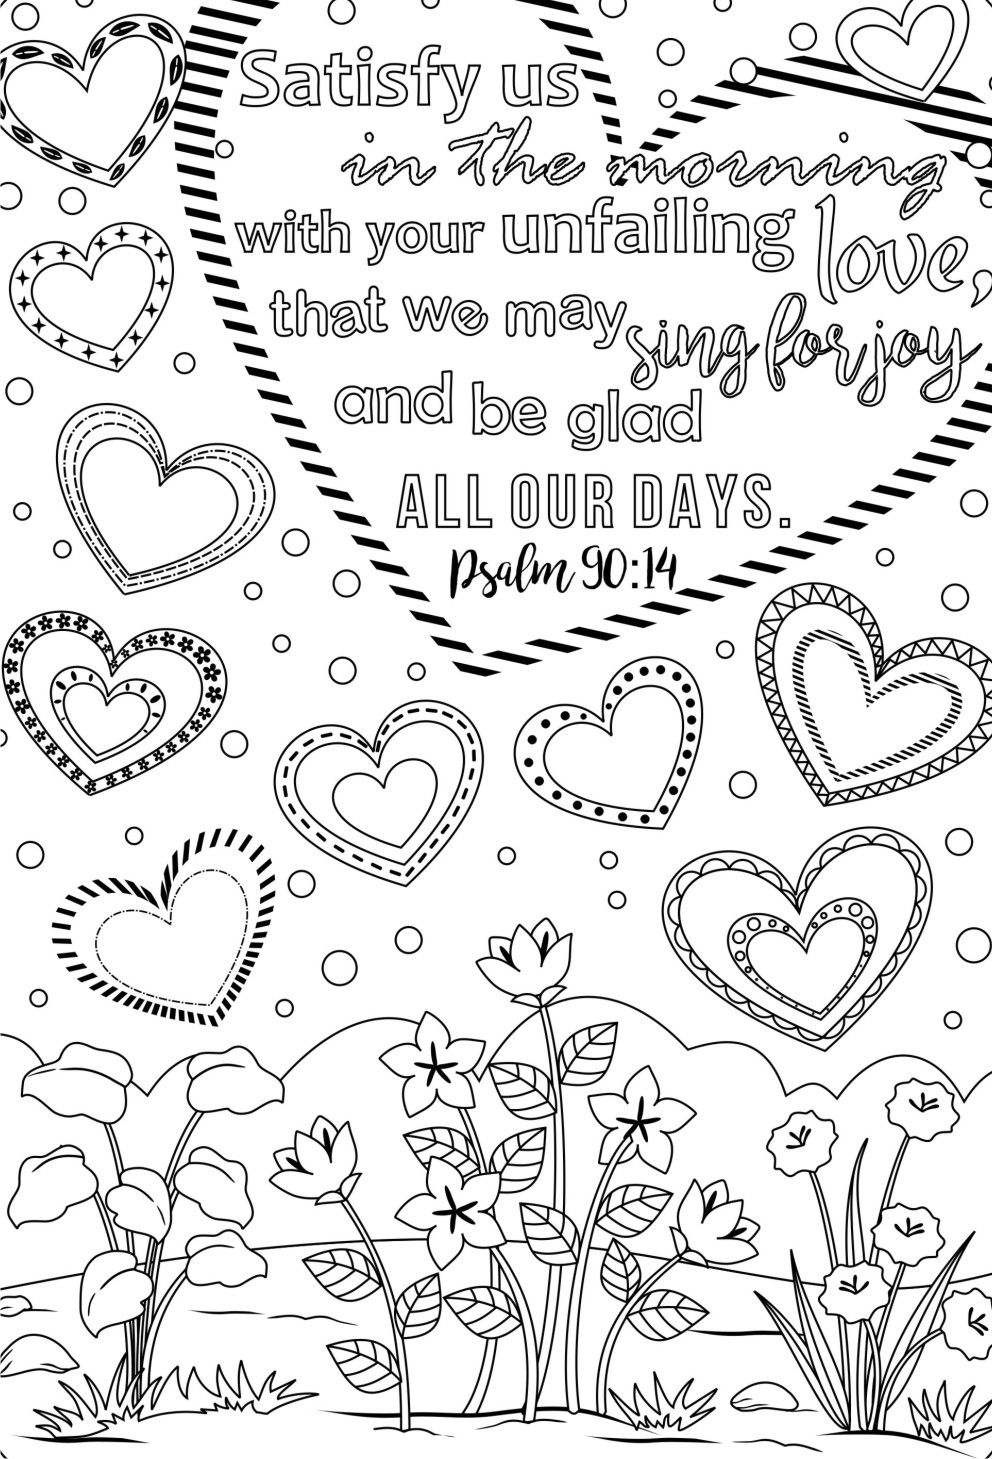 Christian Coloring Pages for Adults Coloring Pages Gallery Of Free Printable Adult Coloring Pages Hymns & Scripture Our Printable